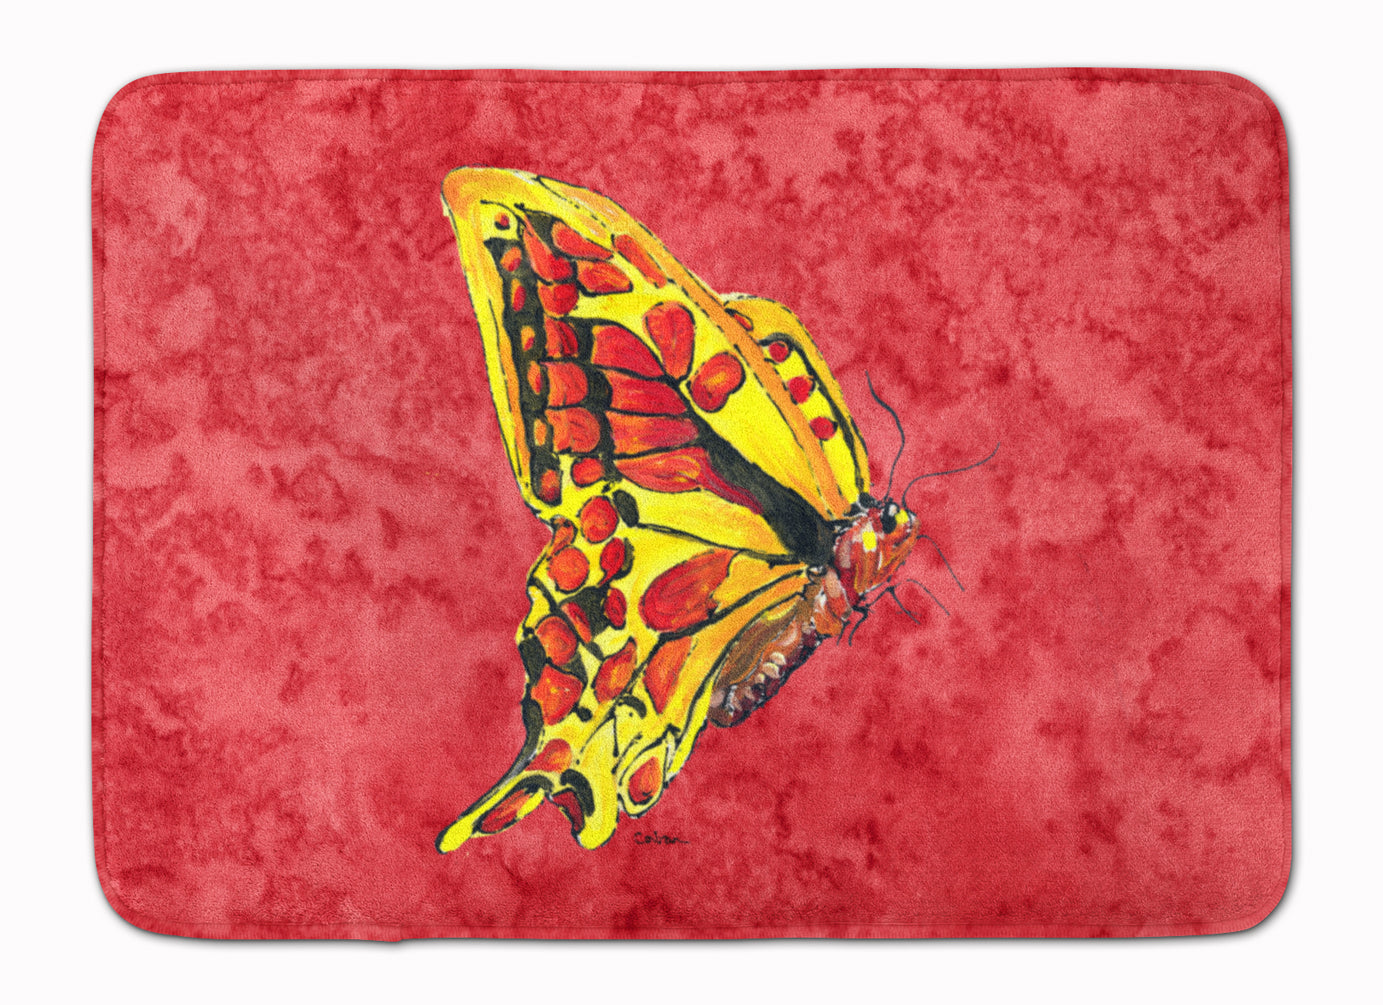 Butterfly on Red Machine Washable Memory Foam Mat 8862RUG by Caroline's Treasures